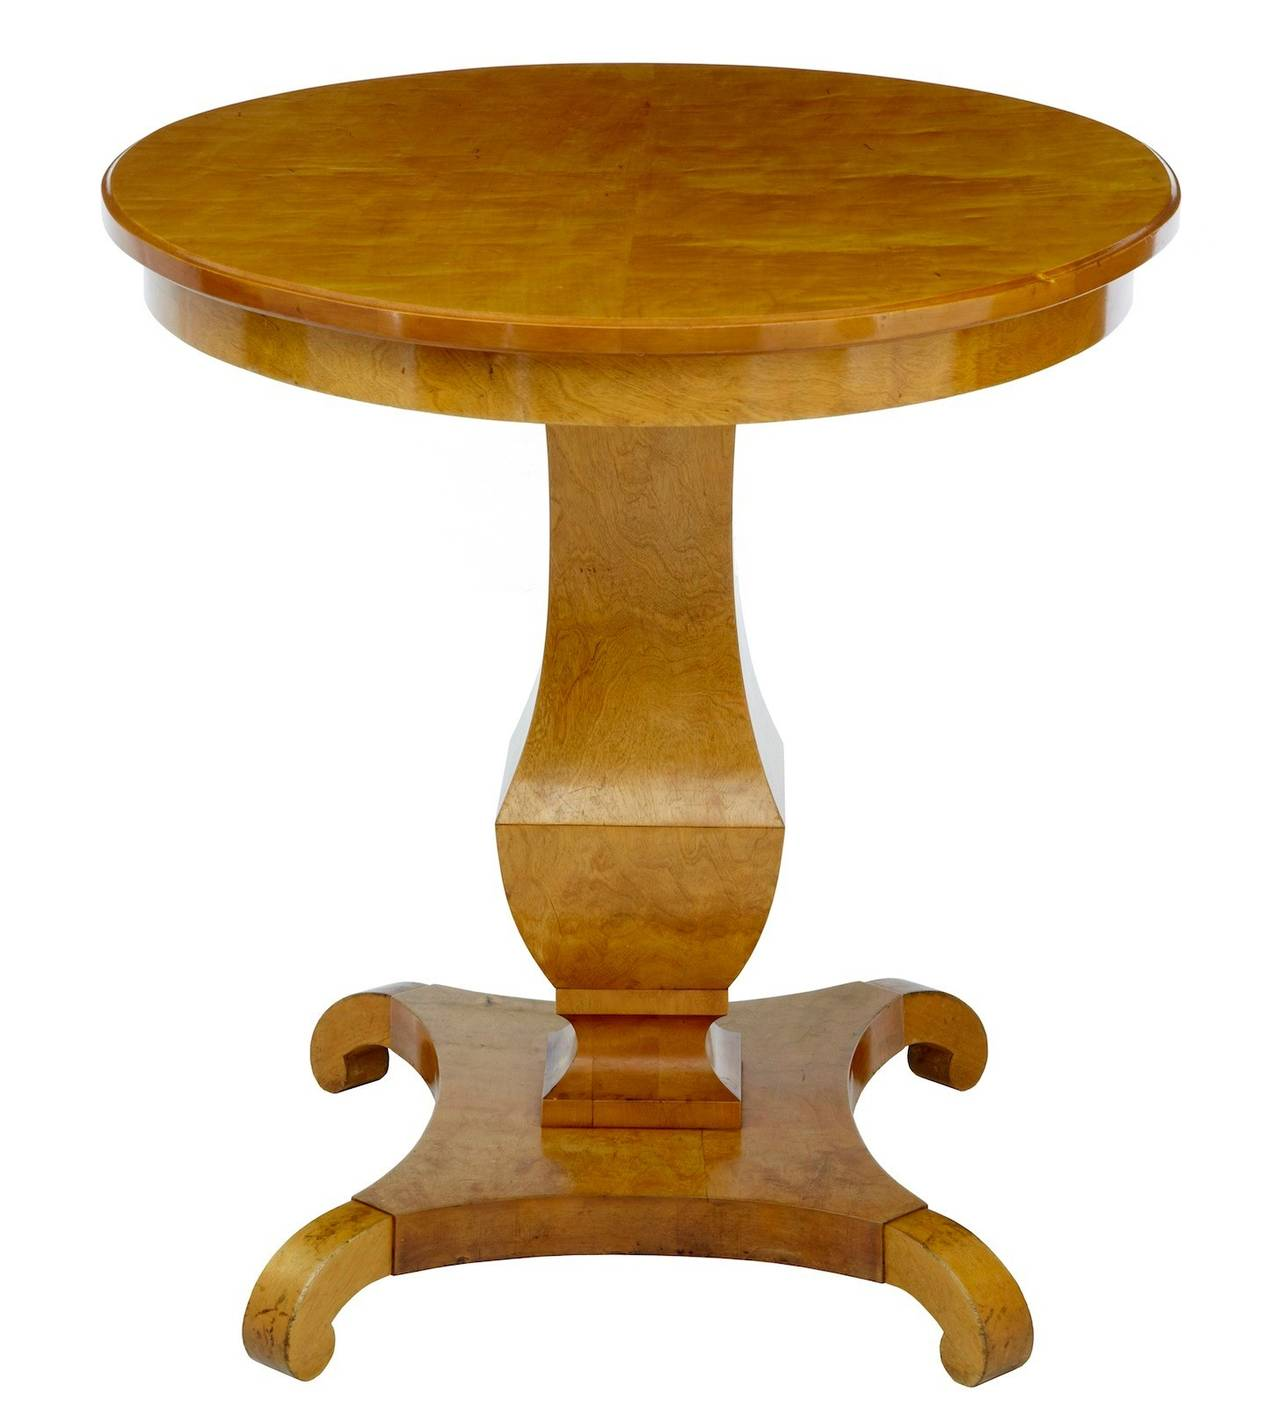 19th century, Swedish birch centre occasional table Swedish birch centre table circa 1890. Of good color and patina. Oval top with fluted stem leading to quadriform base   Measures: Height: 30